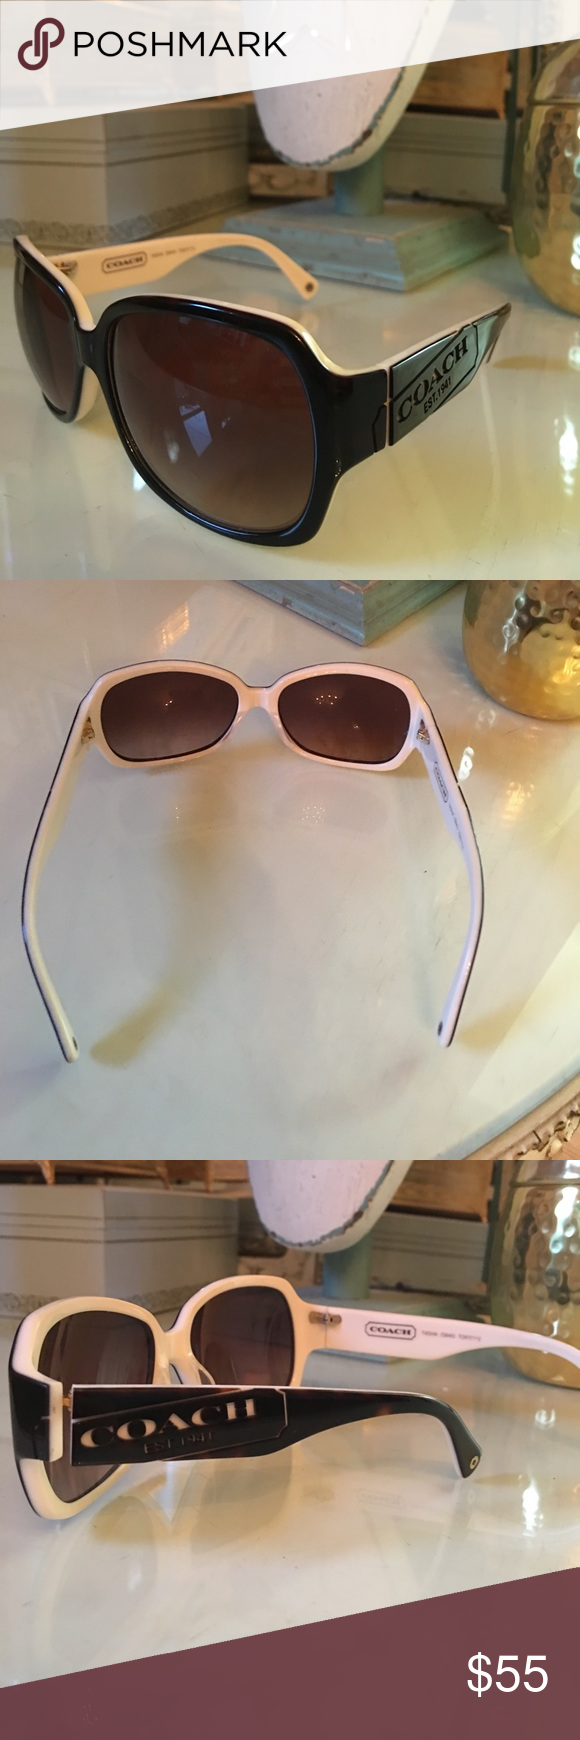 82487e859c32 ... shopping gently used in great condition no scratches. the sides of the  glasses read coach ...